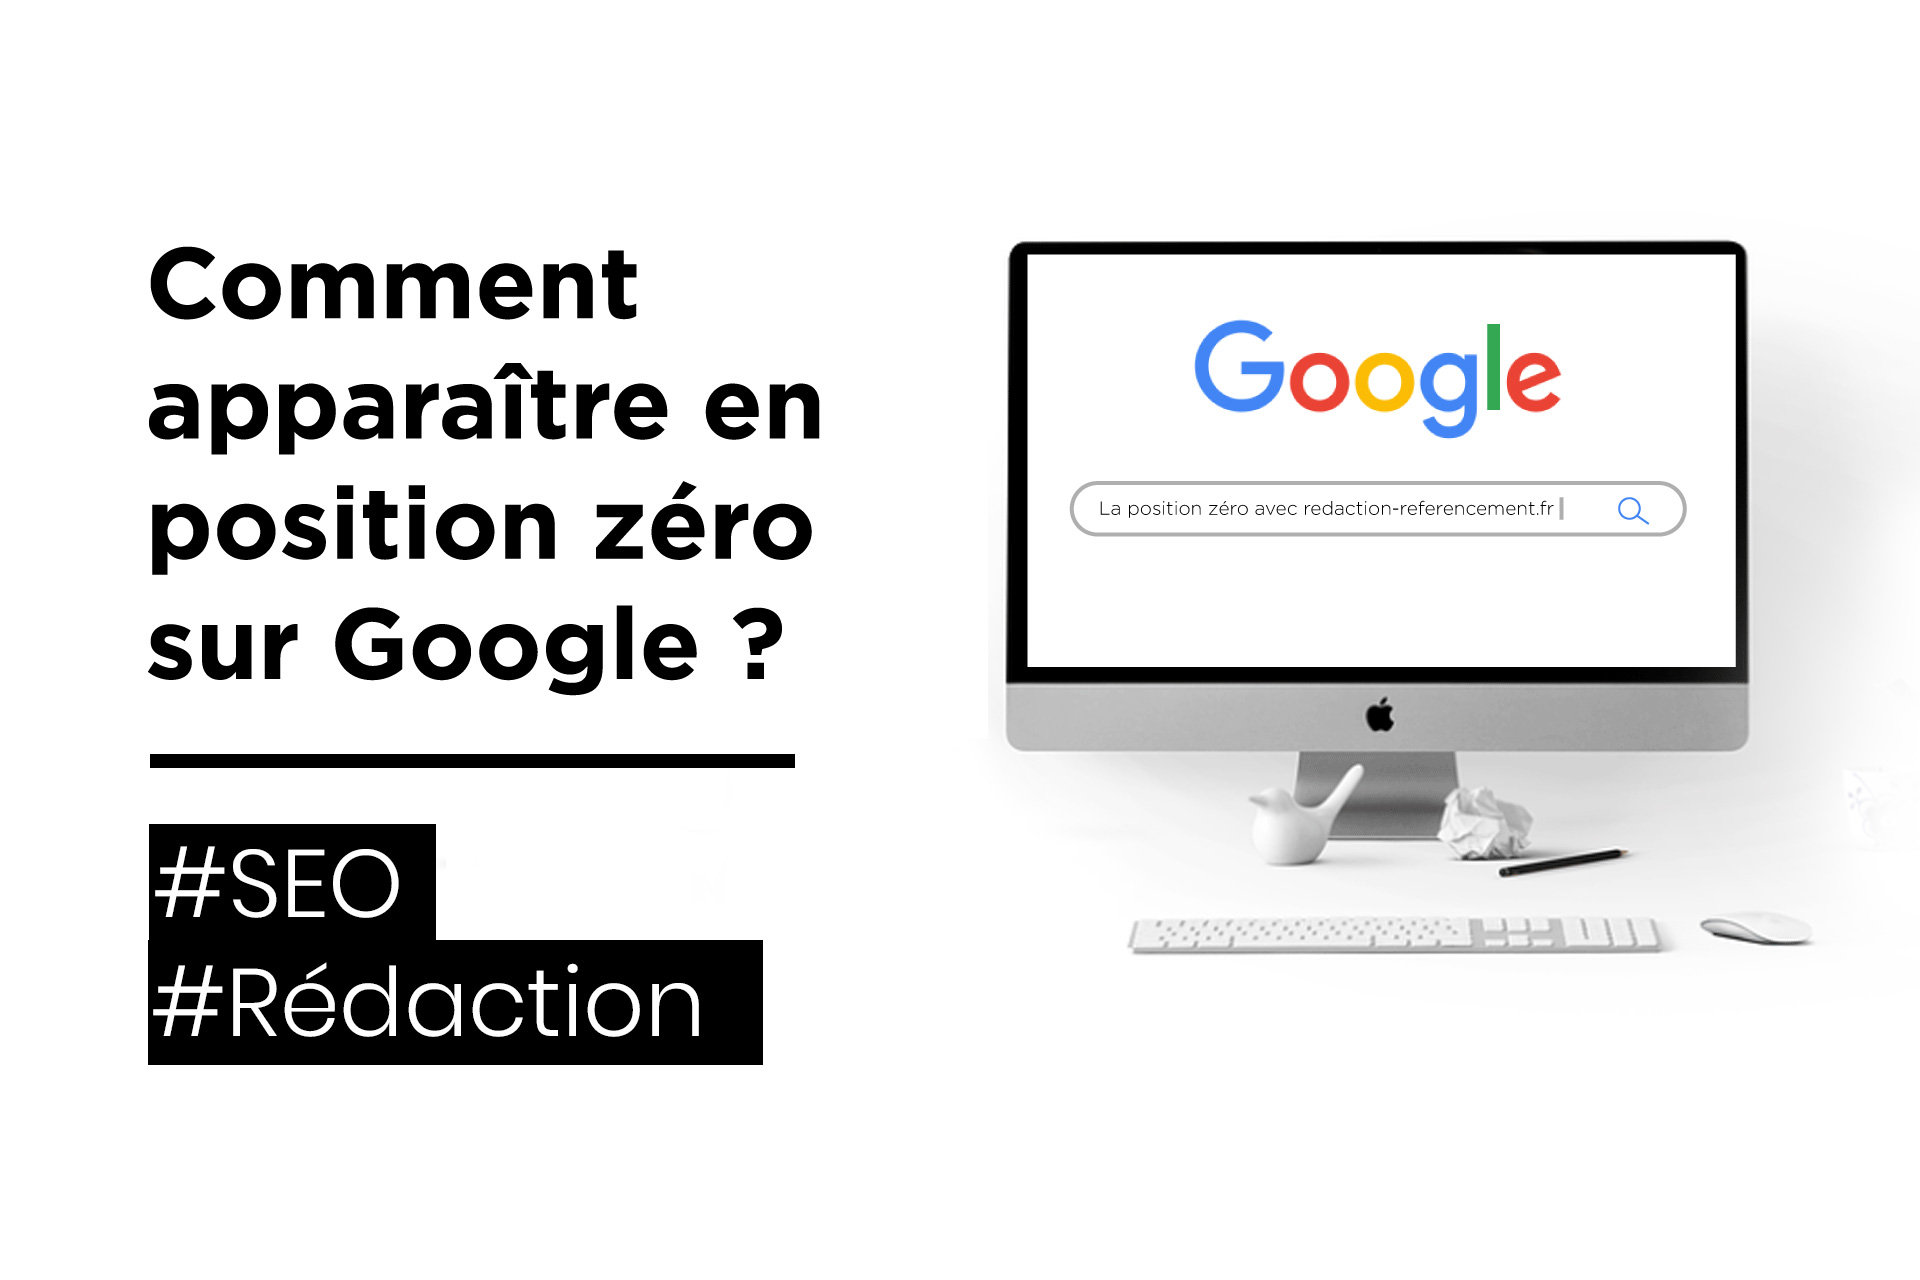 comment apparaitre en poisition zero sur google